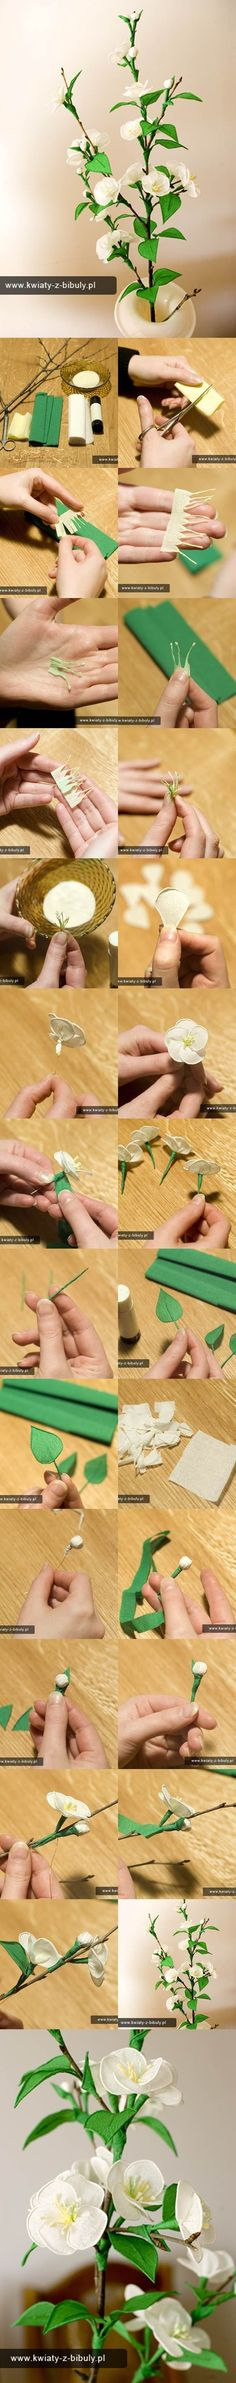 DIY Delicate Crepe Paper Cherry Blossom Sprig www. Fake Flowers, Diy Flowers, Fabric Flowers, Fleurs Diy, Diy And Crafts, Paper Crafts, Diy Papier, Tissue Paper Flowers, Deco Floral